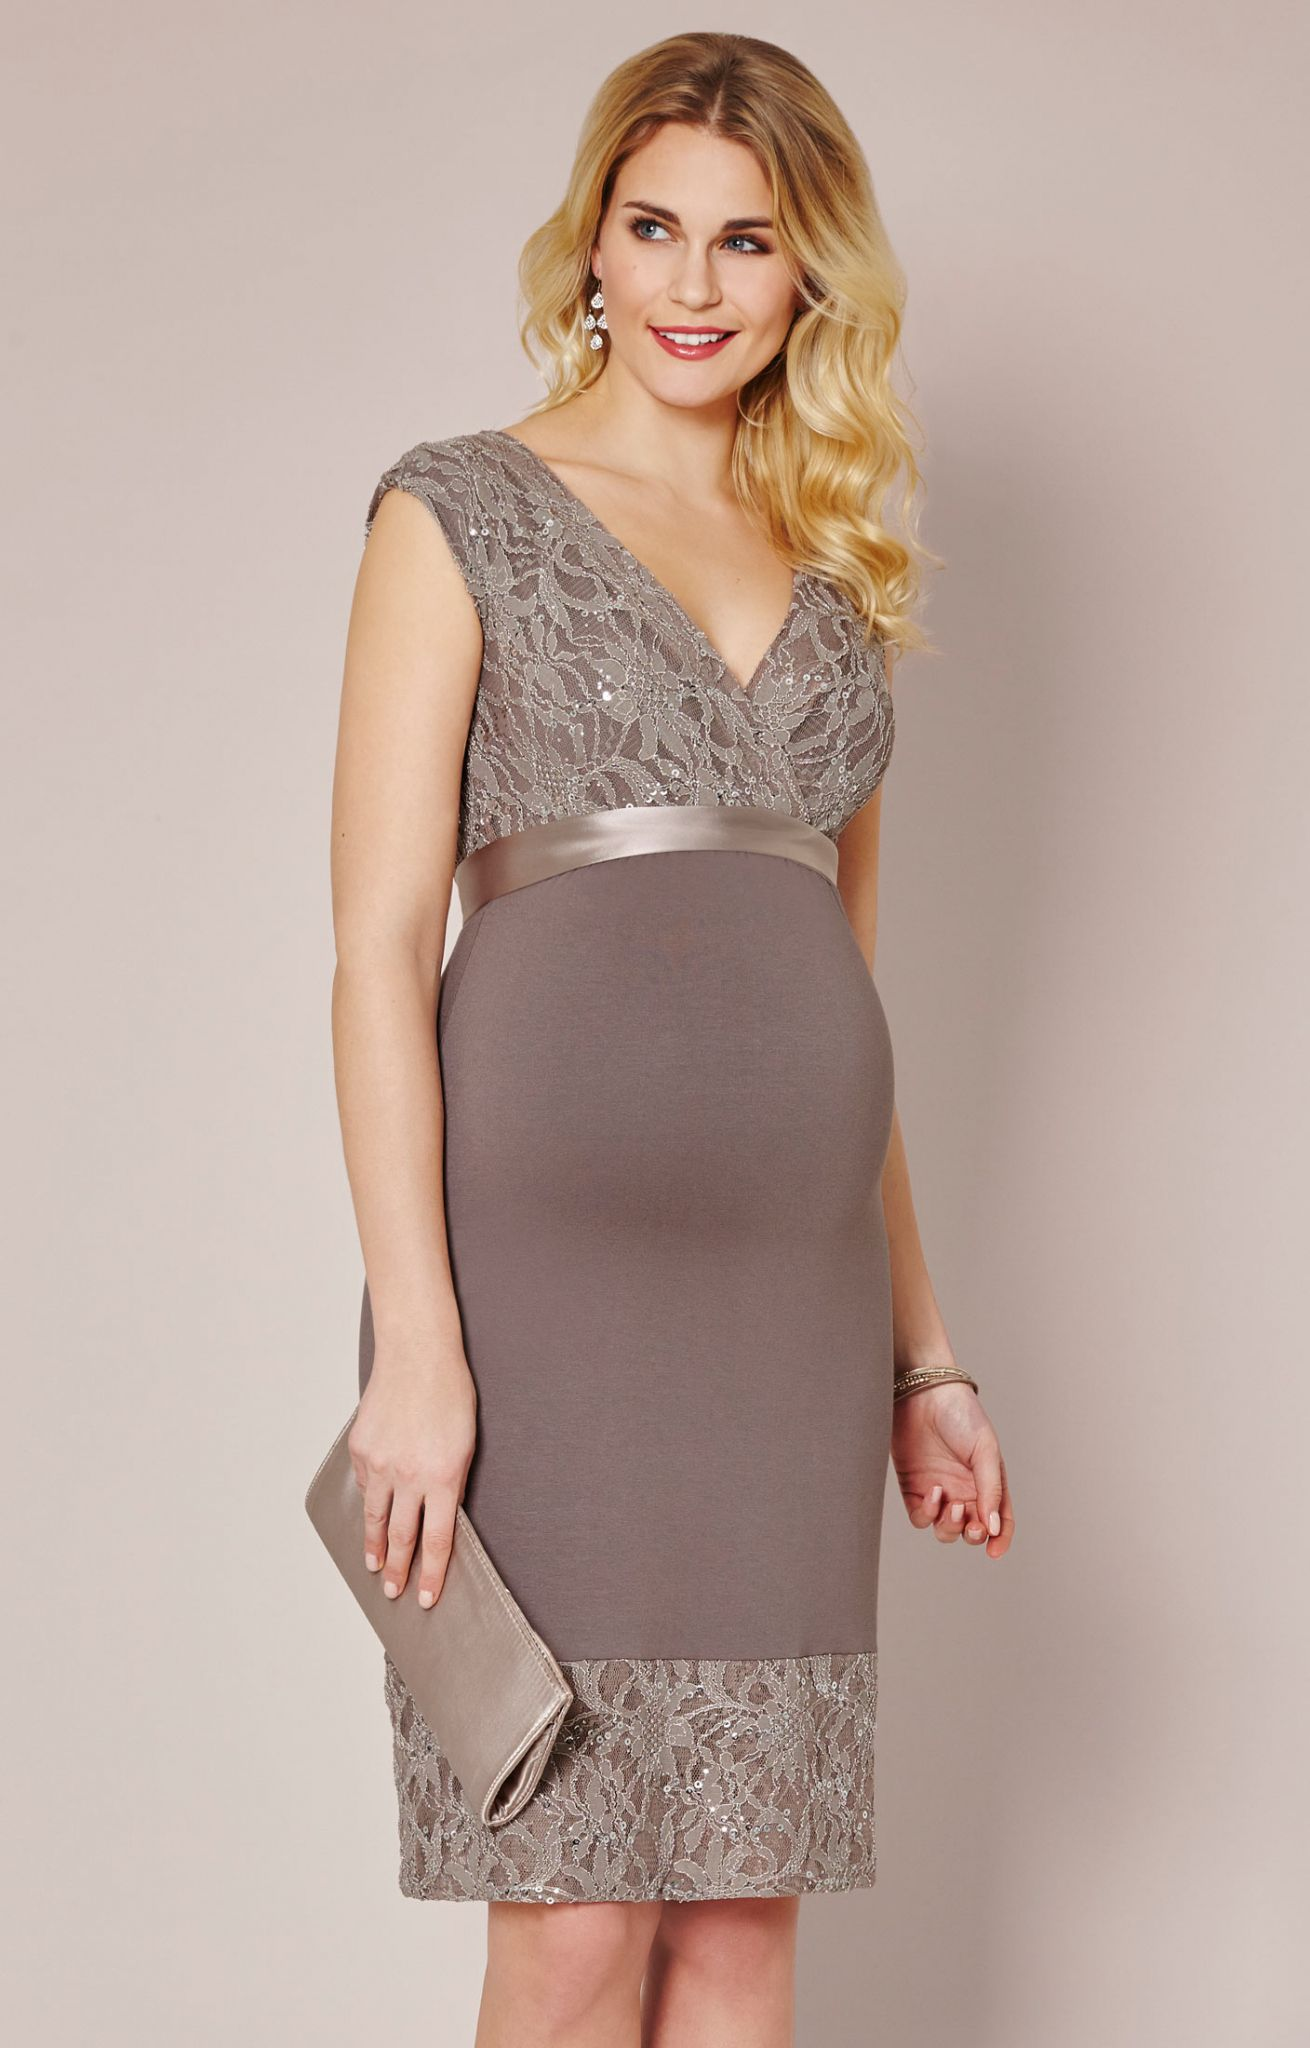 Maternity dress for wedding plus size dresses for wedding guests maternity dress for wedding plus size dresses for wedding guests check more at http ombrellifo Choice Image